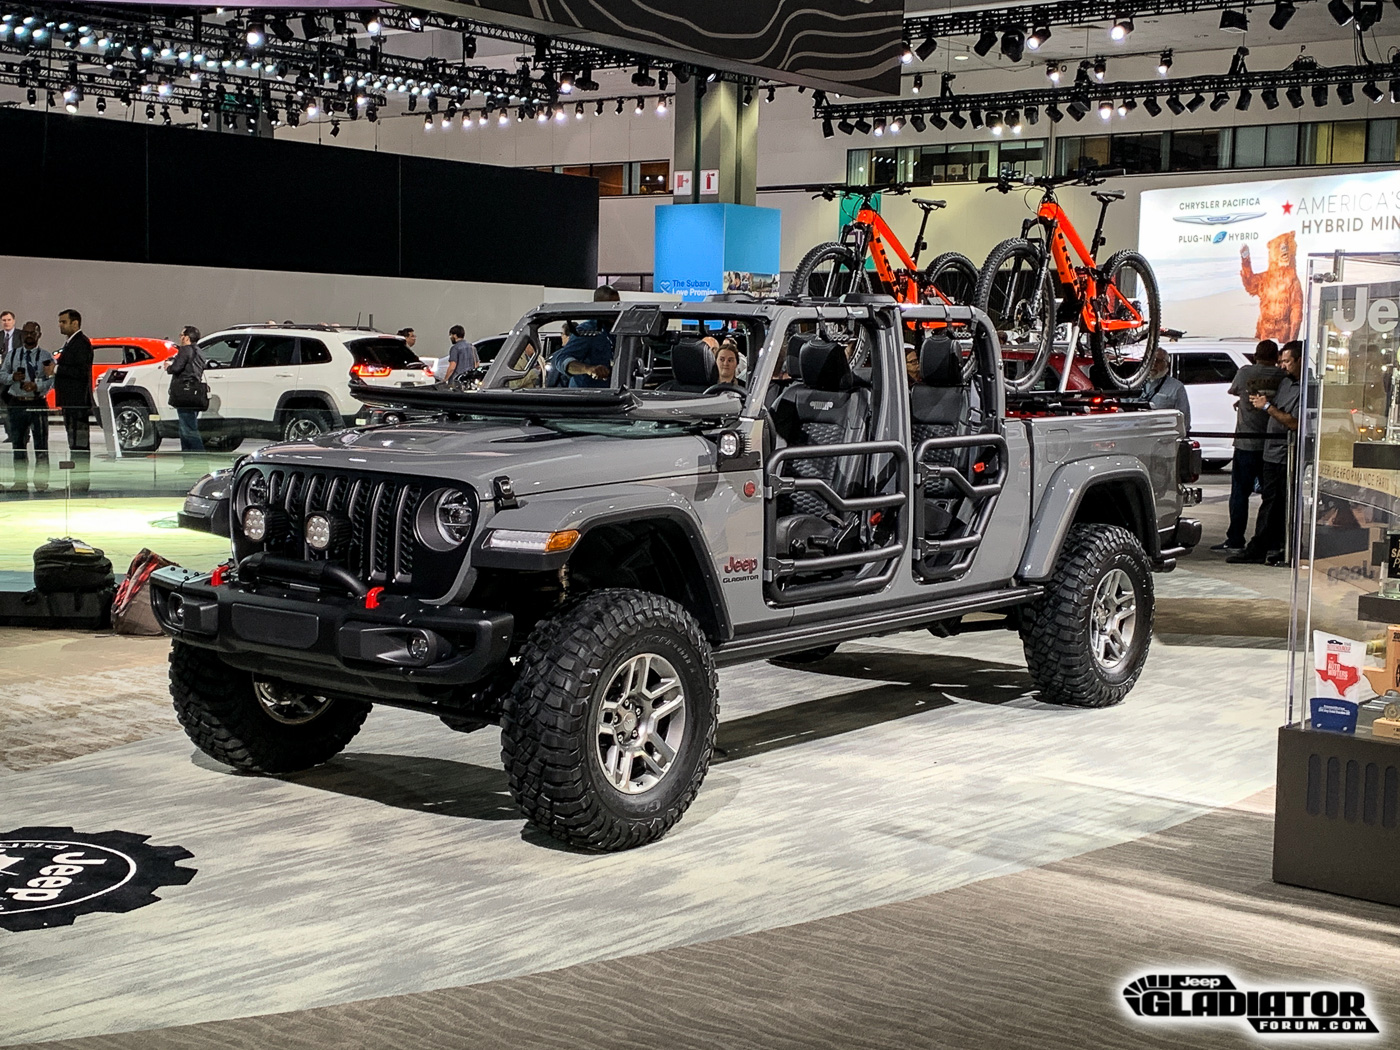 2018 Jeep Rubicon >> STING GRAY Gladiator JT Club | Jeep Gladiator Forum - JeepGladiatorForum.com